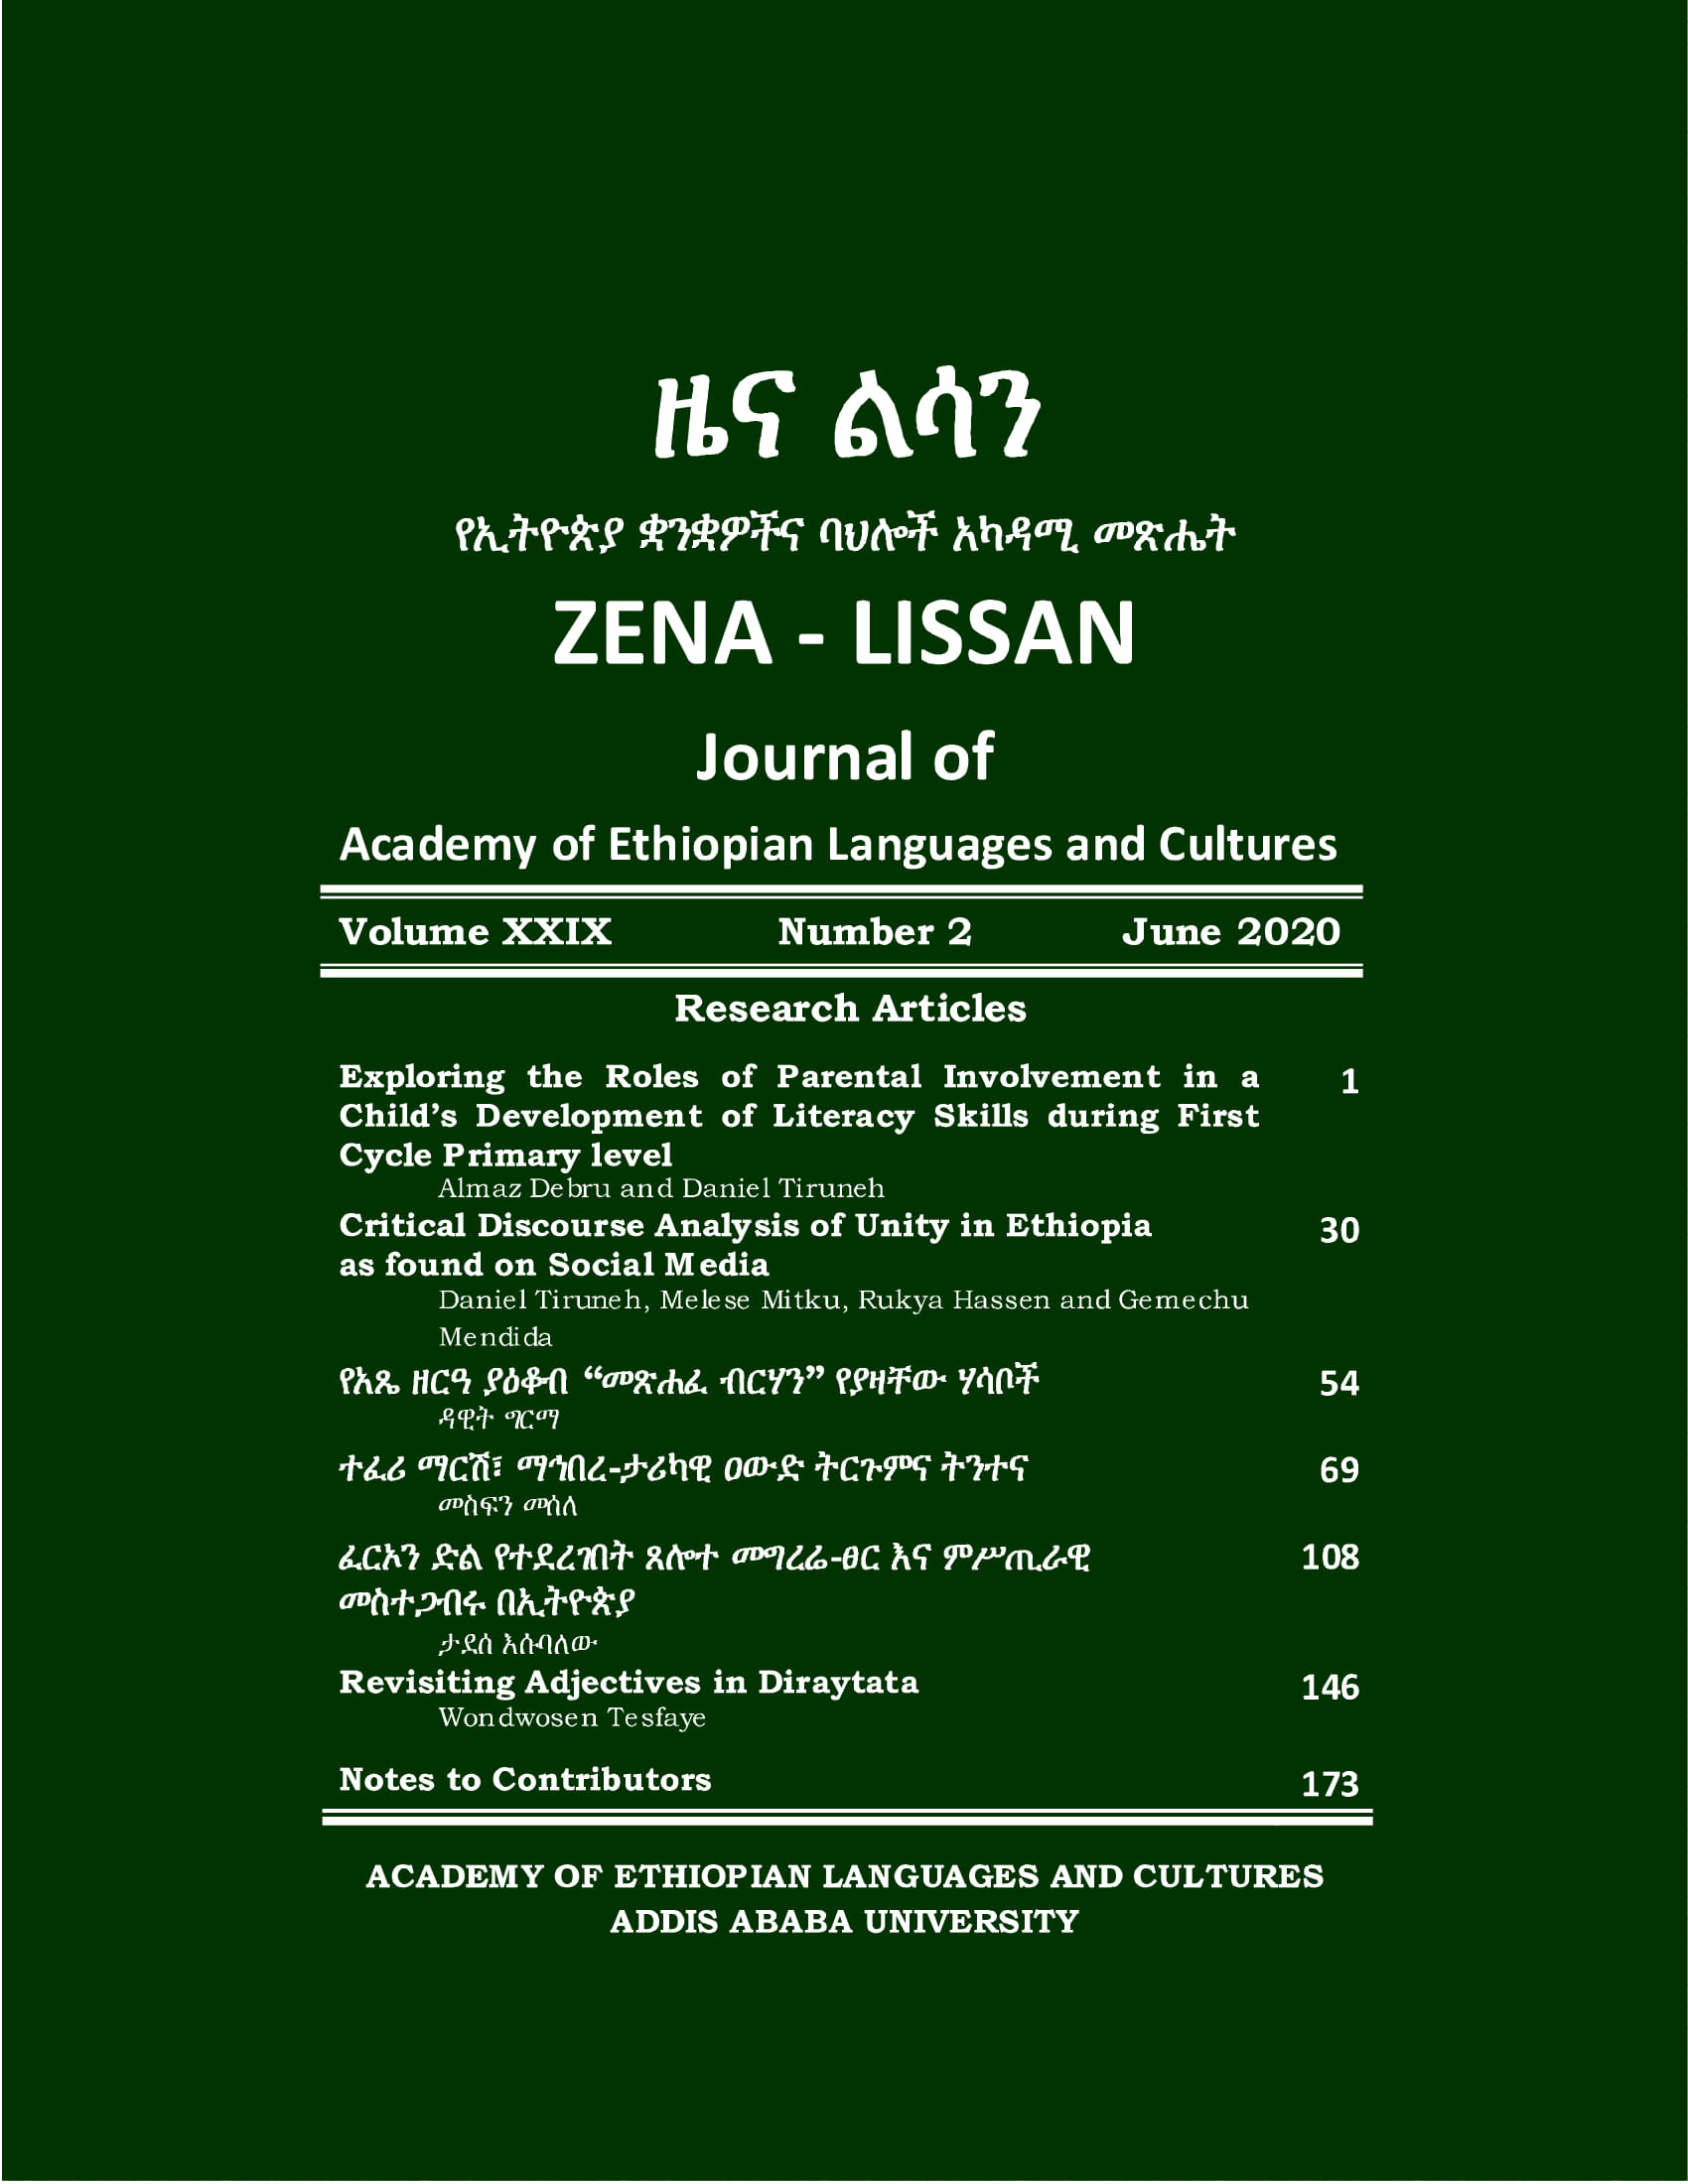 View Vol. 29 No. 2 (2020): ZENA-LISAN Journal of Ethiopian Languages and Cultures